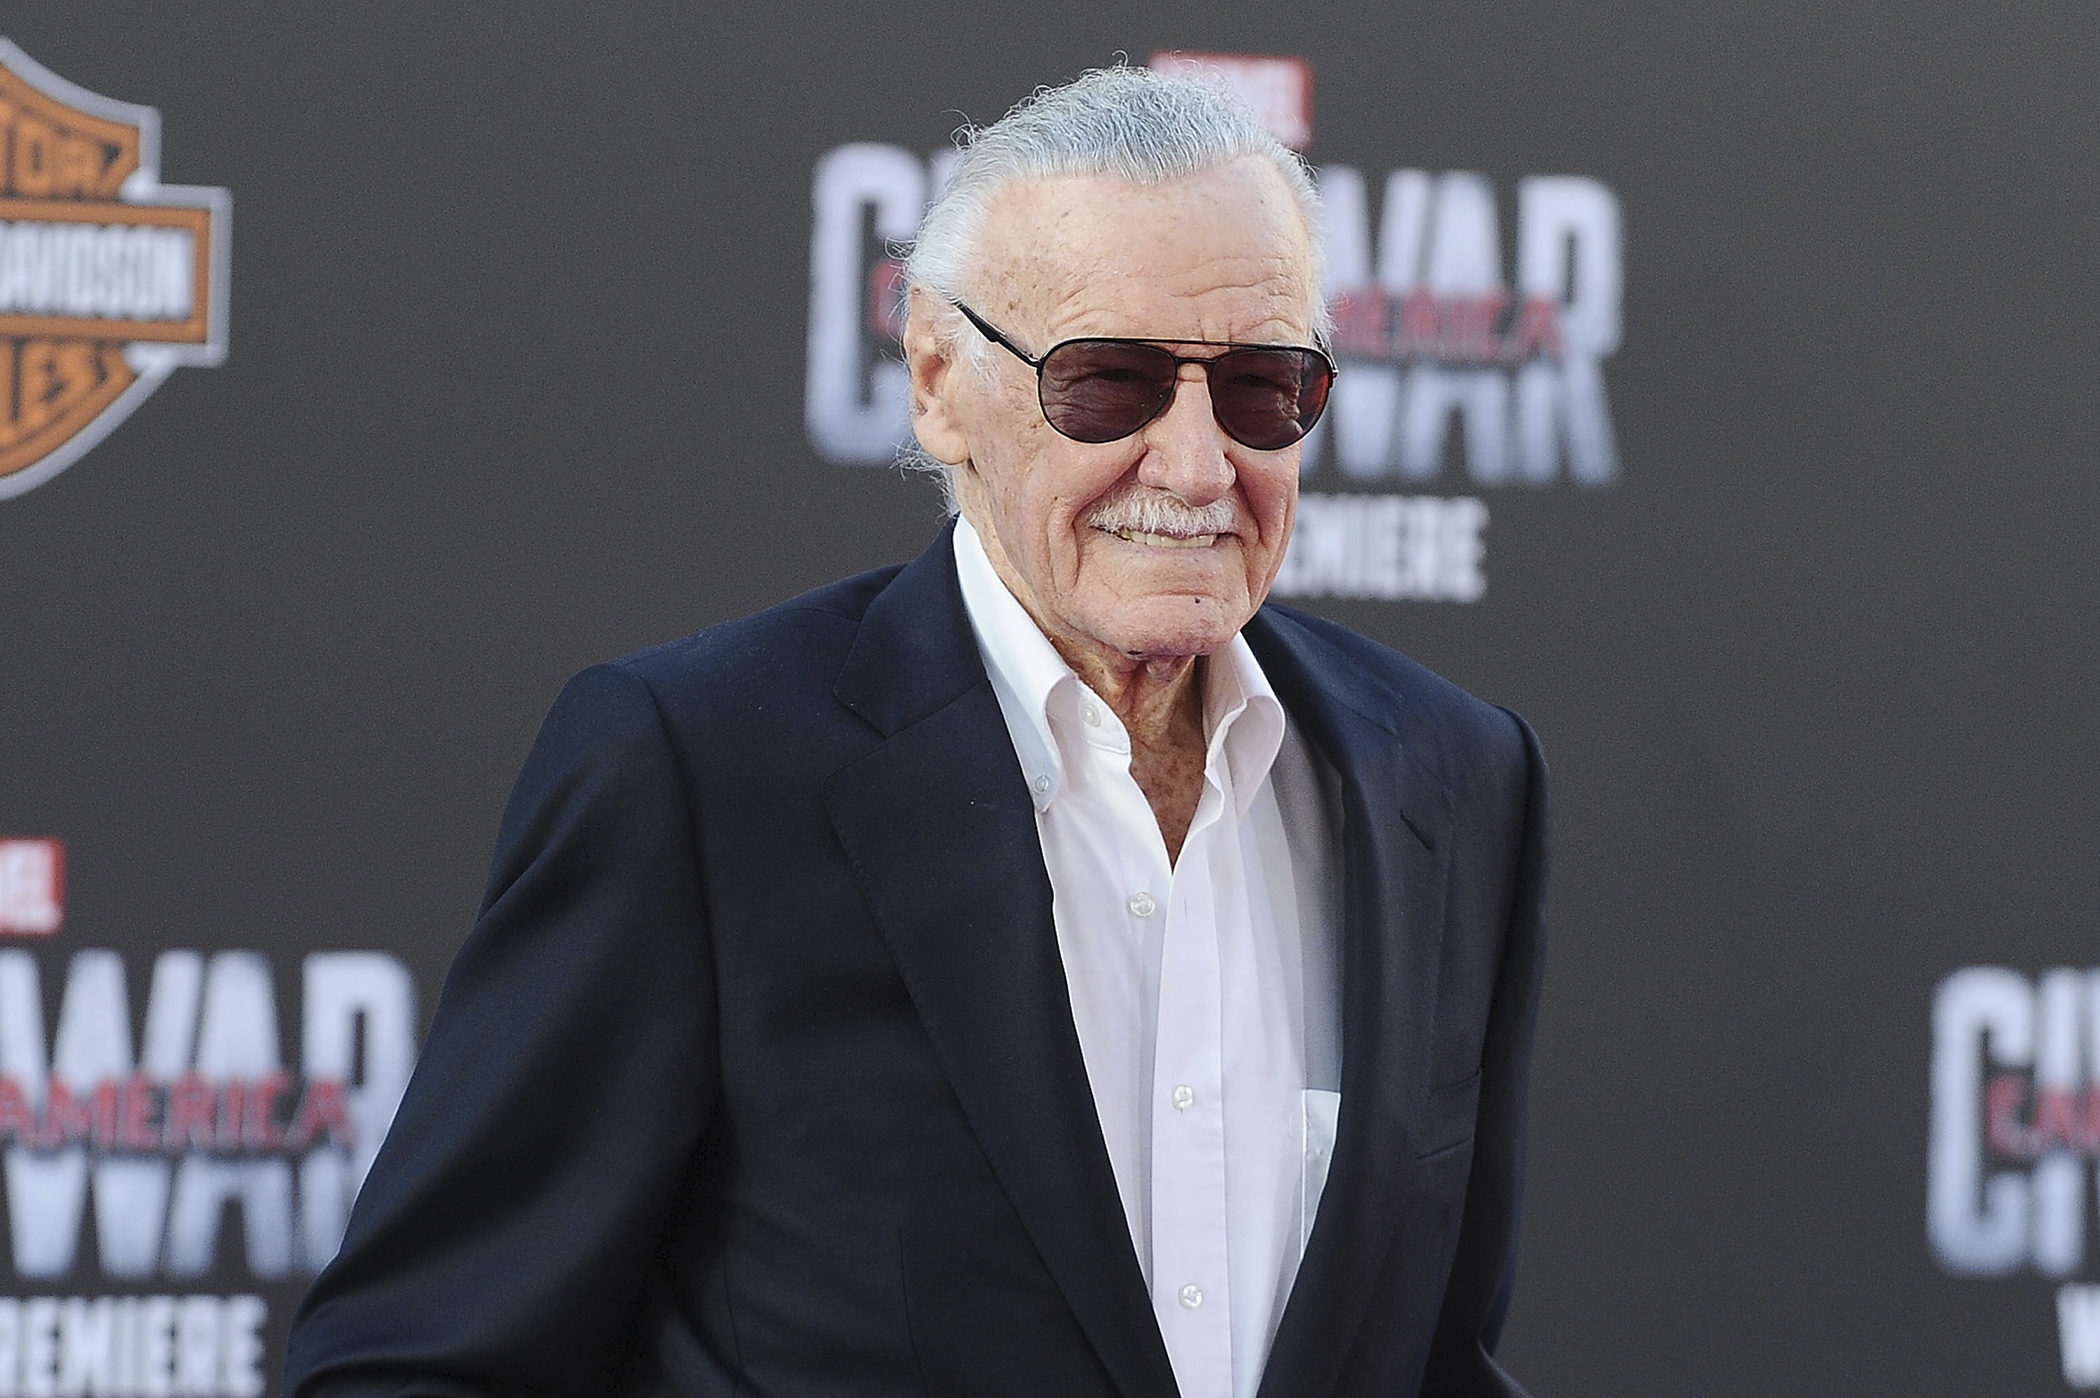 Stan Lee attends the premiere of  Captain America: Civil War  at Dolby Theatre on April 12, 2016 in Hollywood, California.